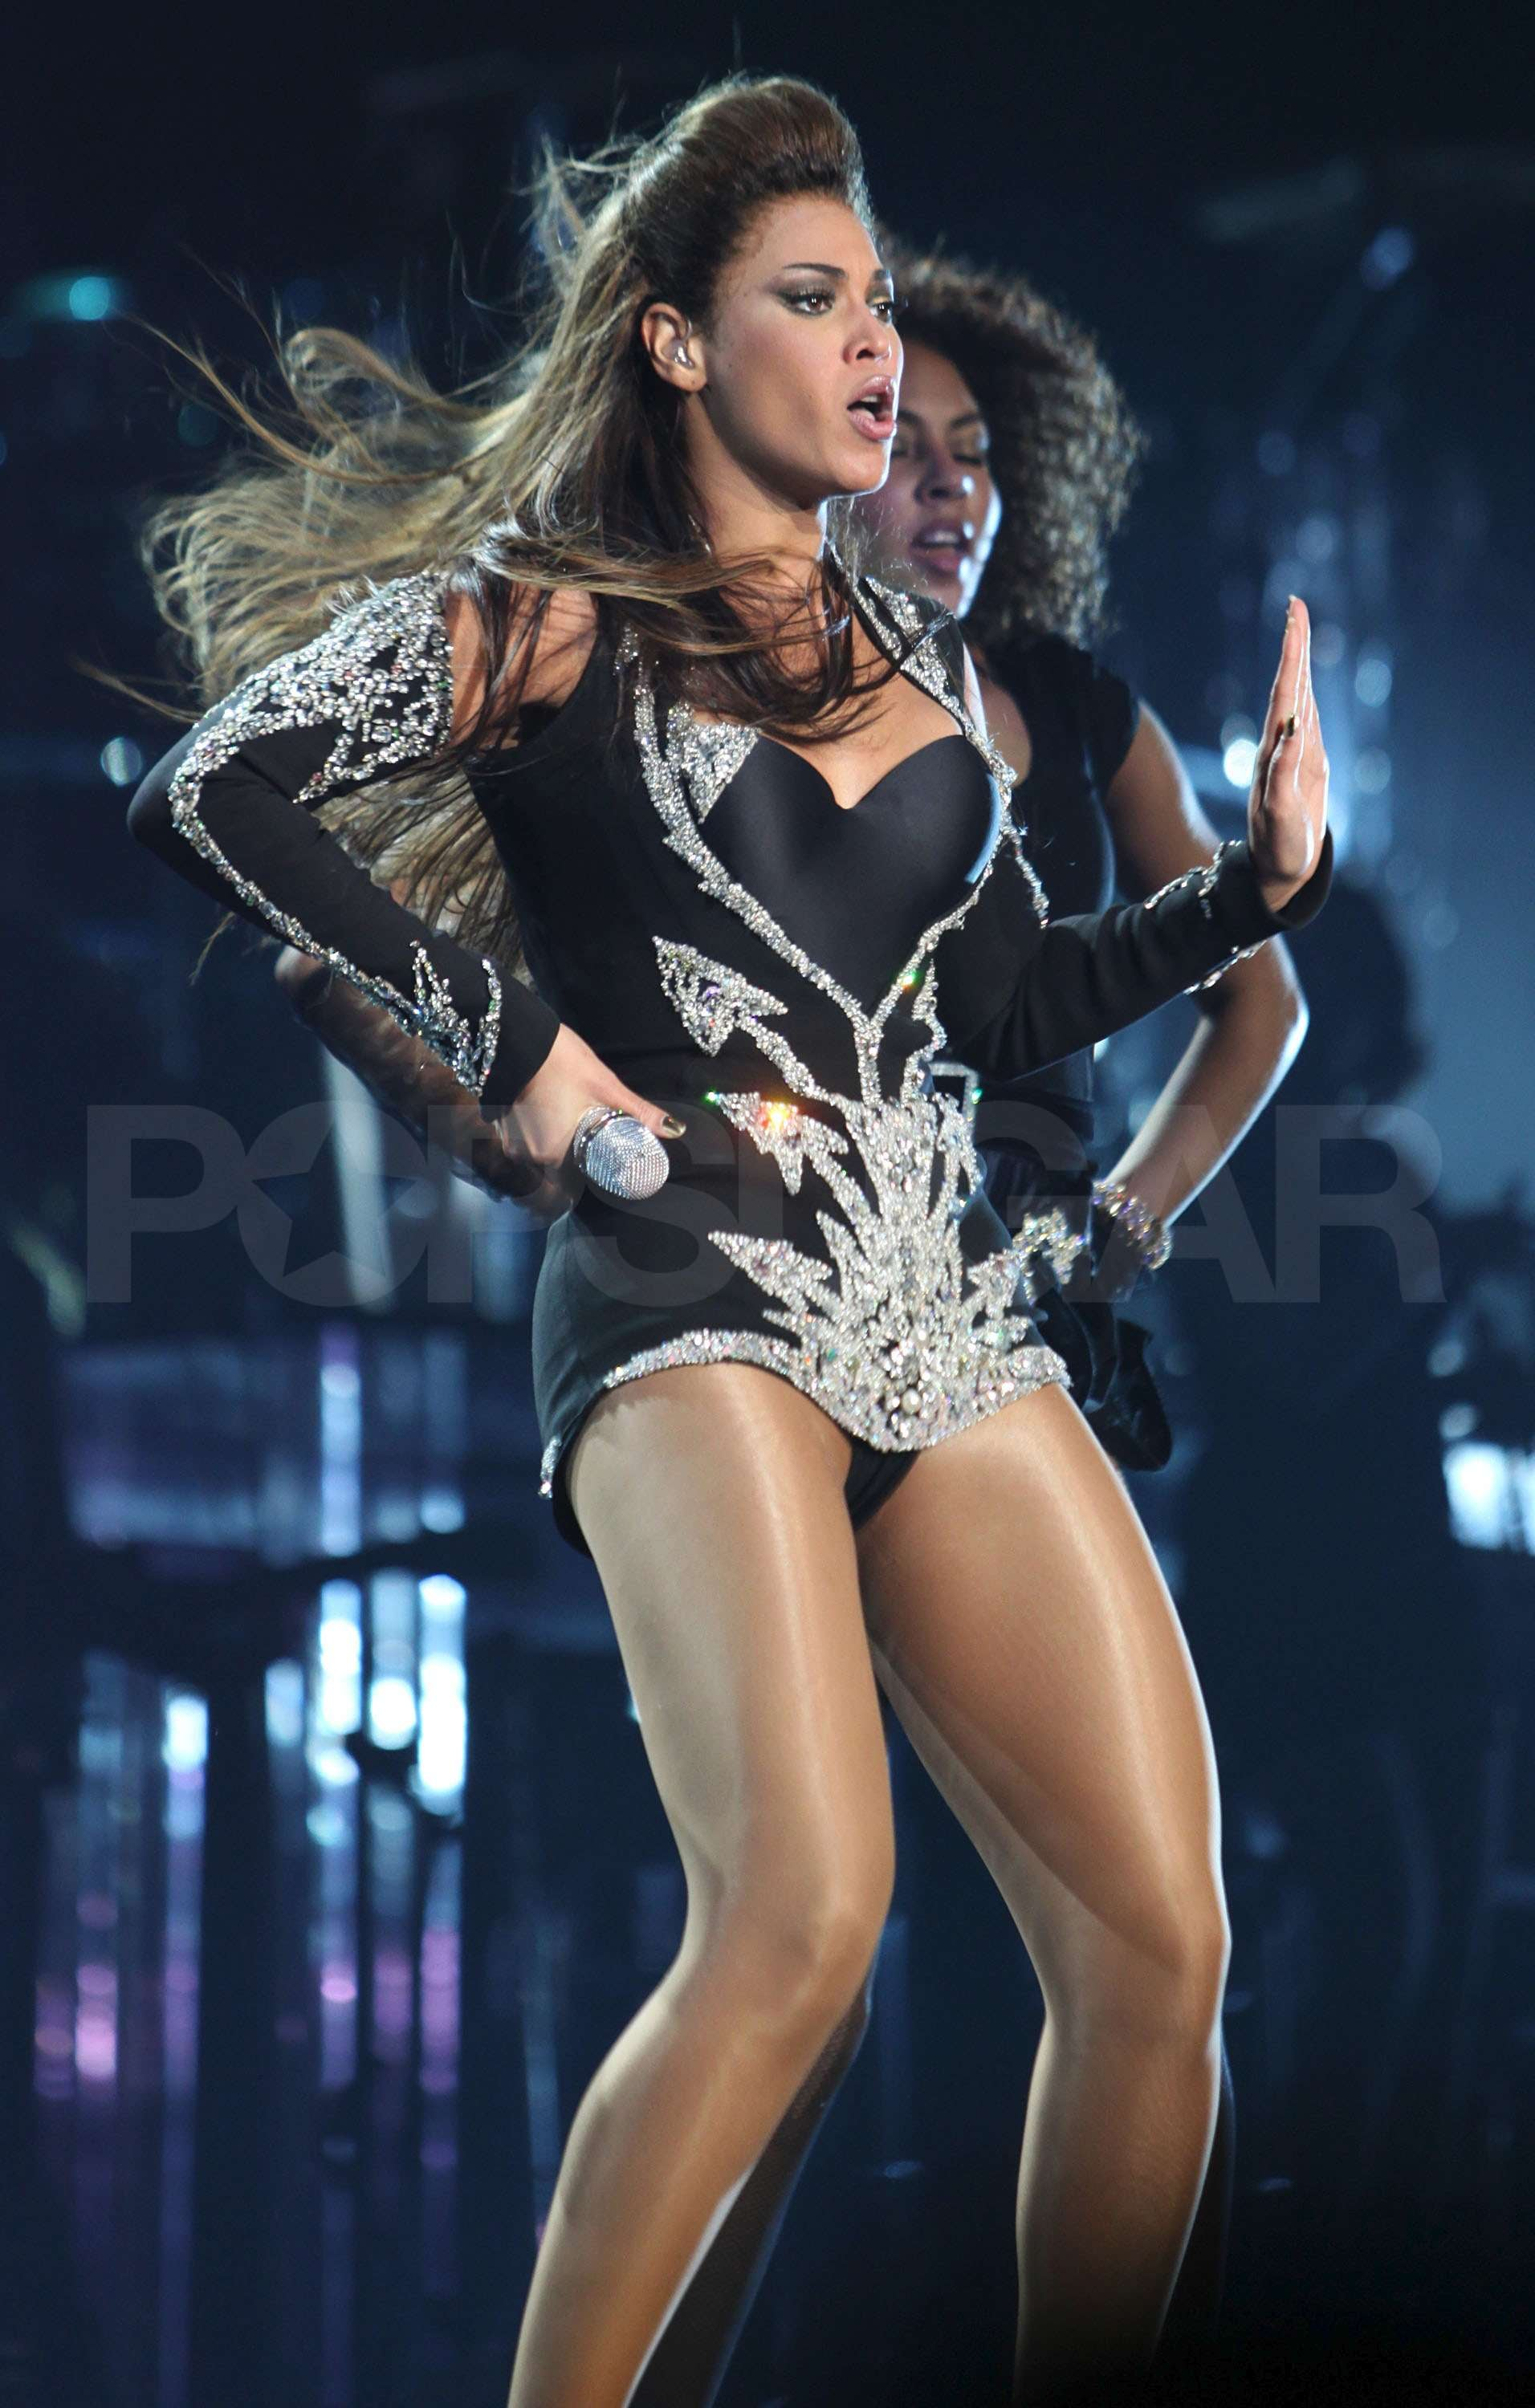 Photos of Beyonce Knowles on Tour in Vancouver | POPSUGAR ...